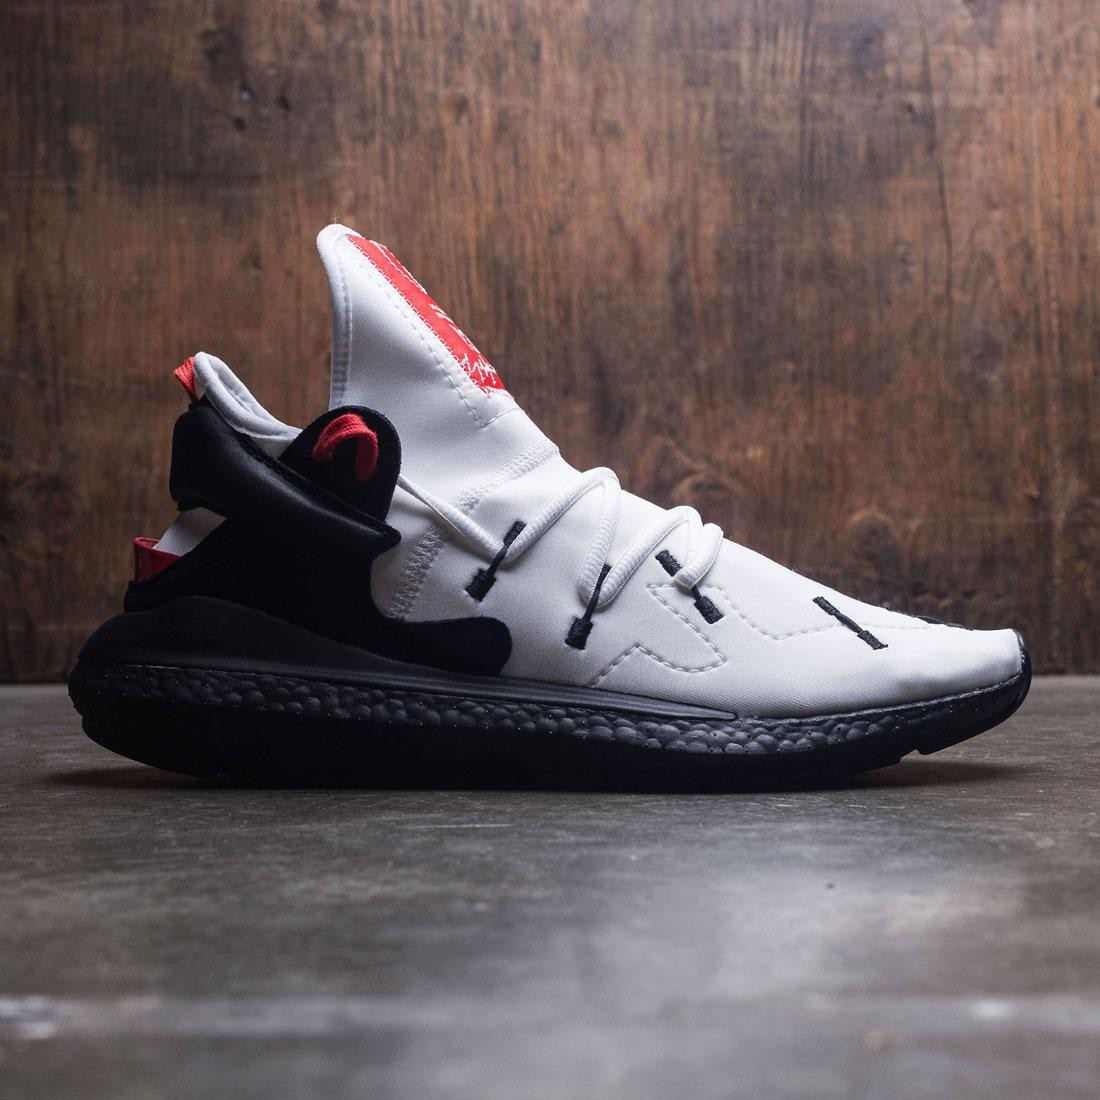 Adidas Y-3 Men Kusari II (white / black / lush red)